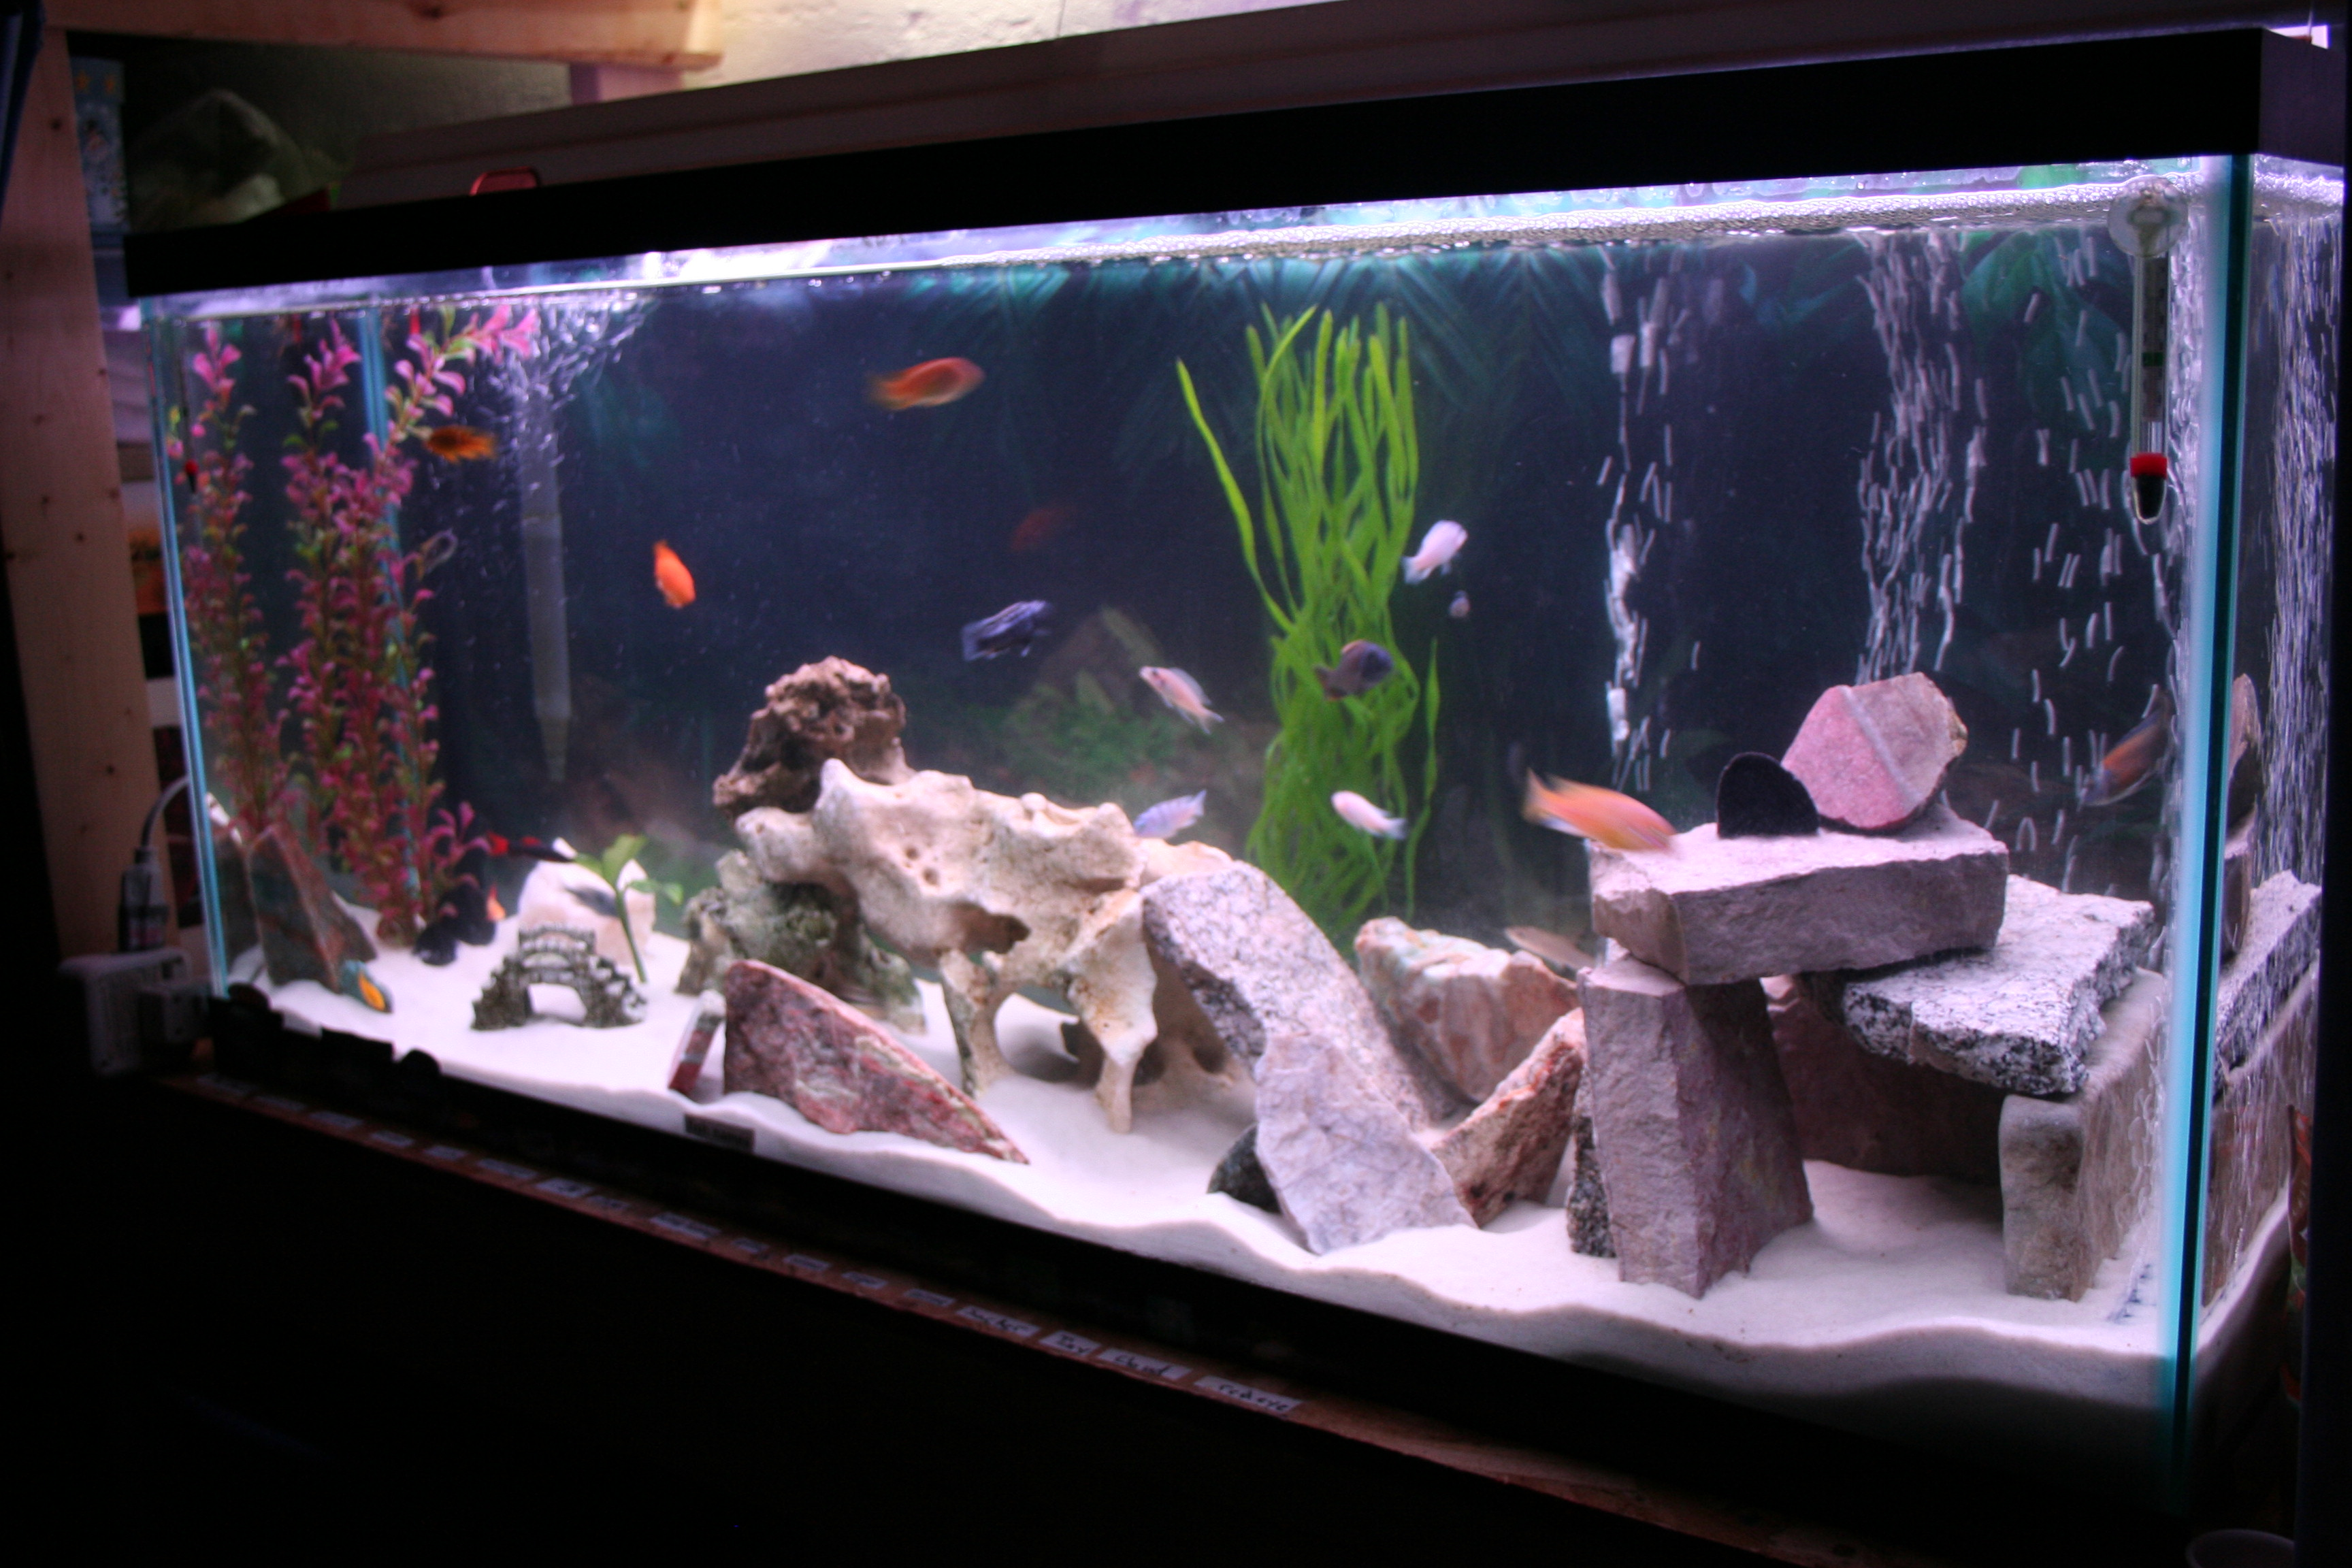 Fish tank decorations for cichlids aquarium rock cave for Aquarium decoration diy